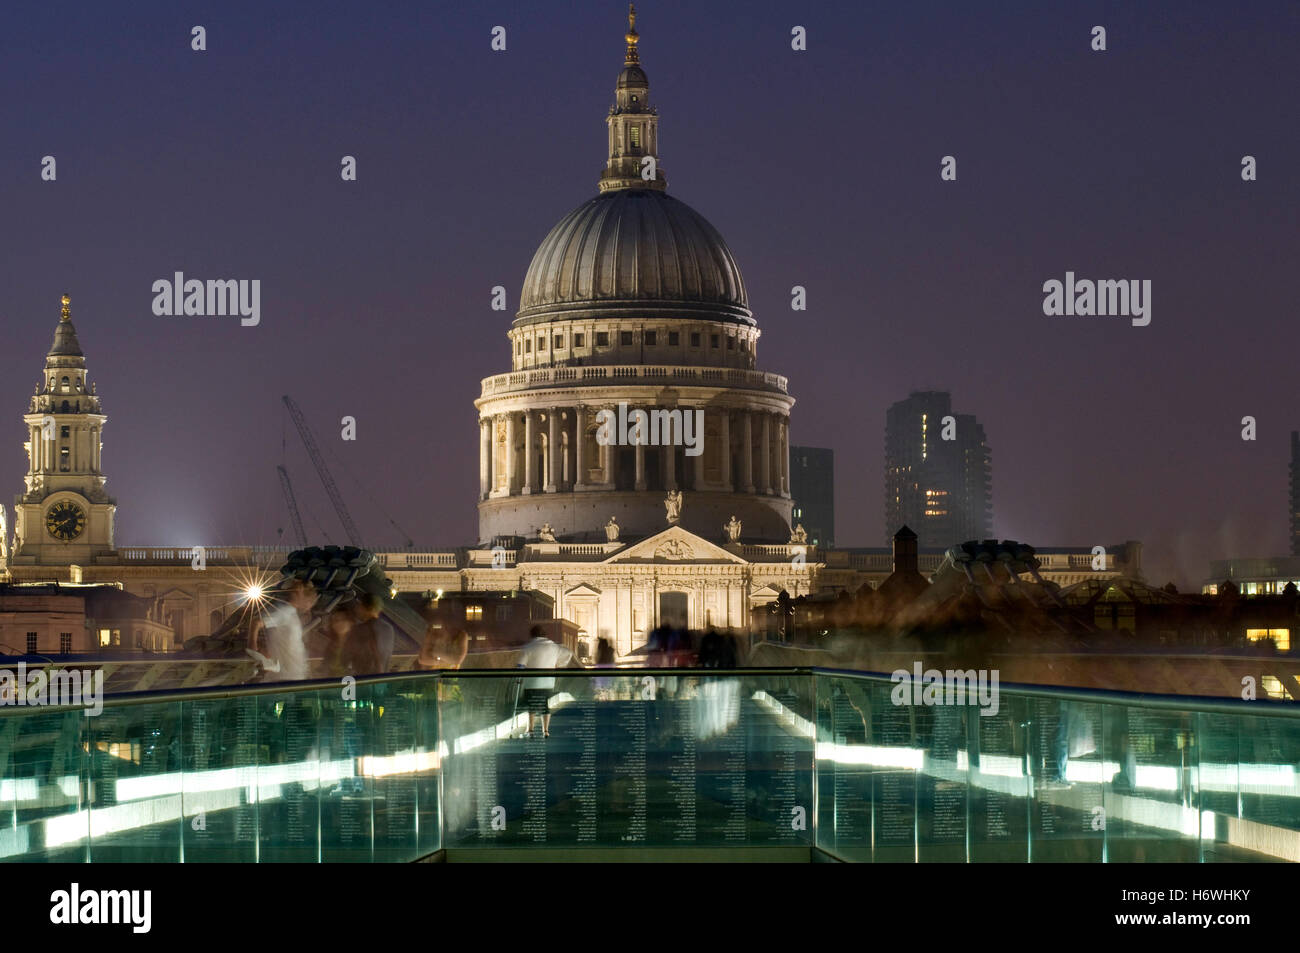 Millennium Bridge and St. Paul's Cathedral at night, London, England, United Kingdom, Europe - Stock Image